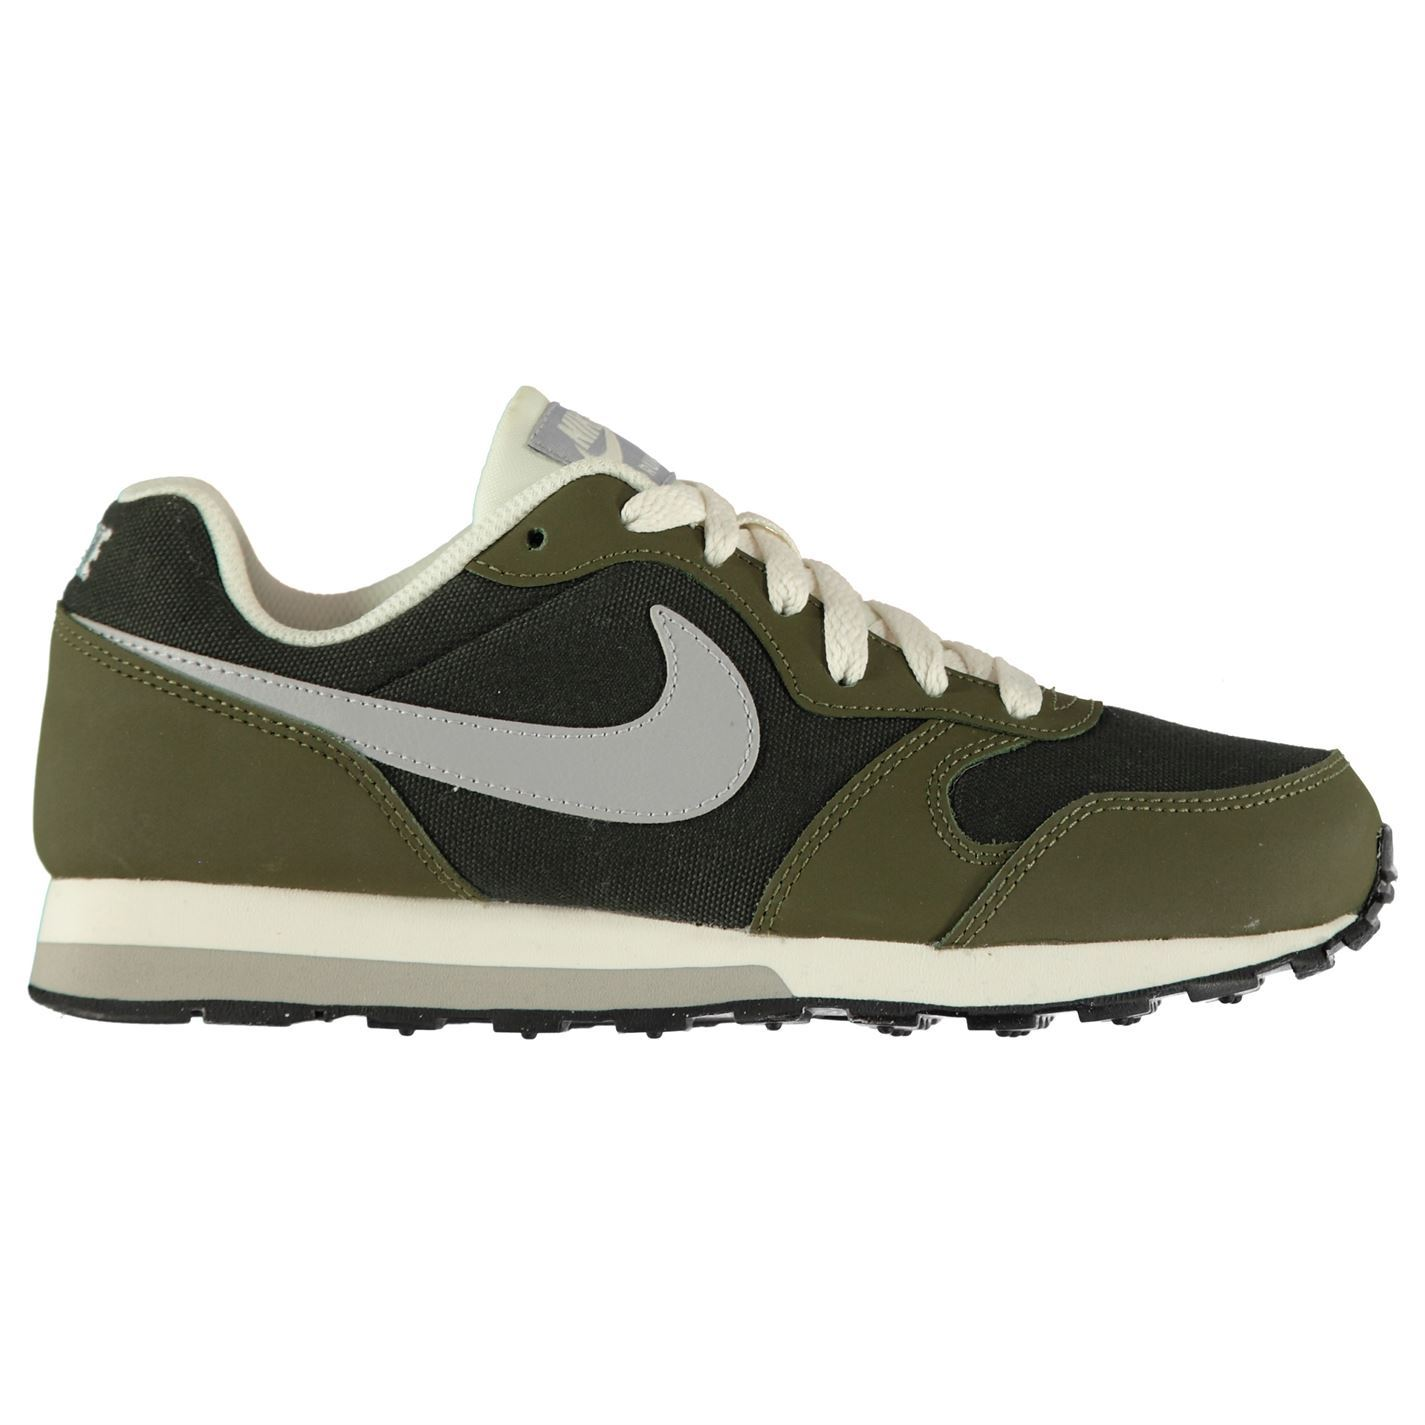 62828b8e59a ... Nike MD Runner 2 Junior Boys Trainers Shoes Footwear